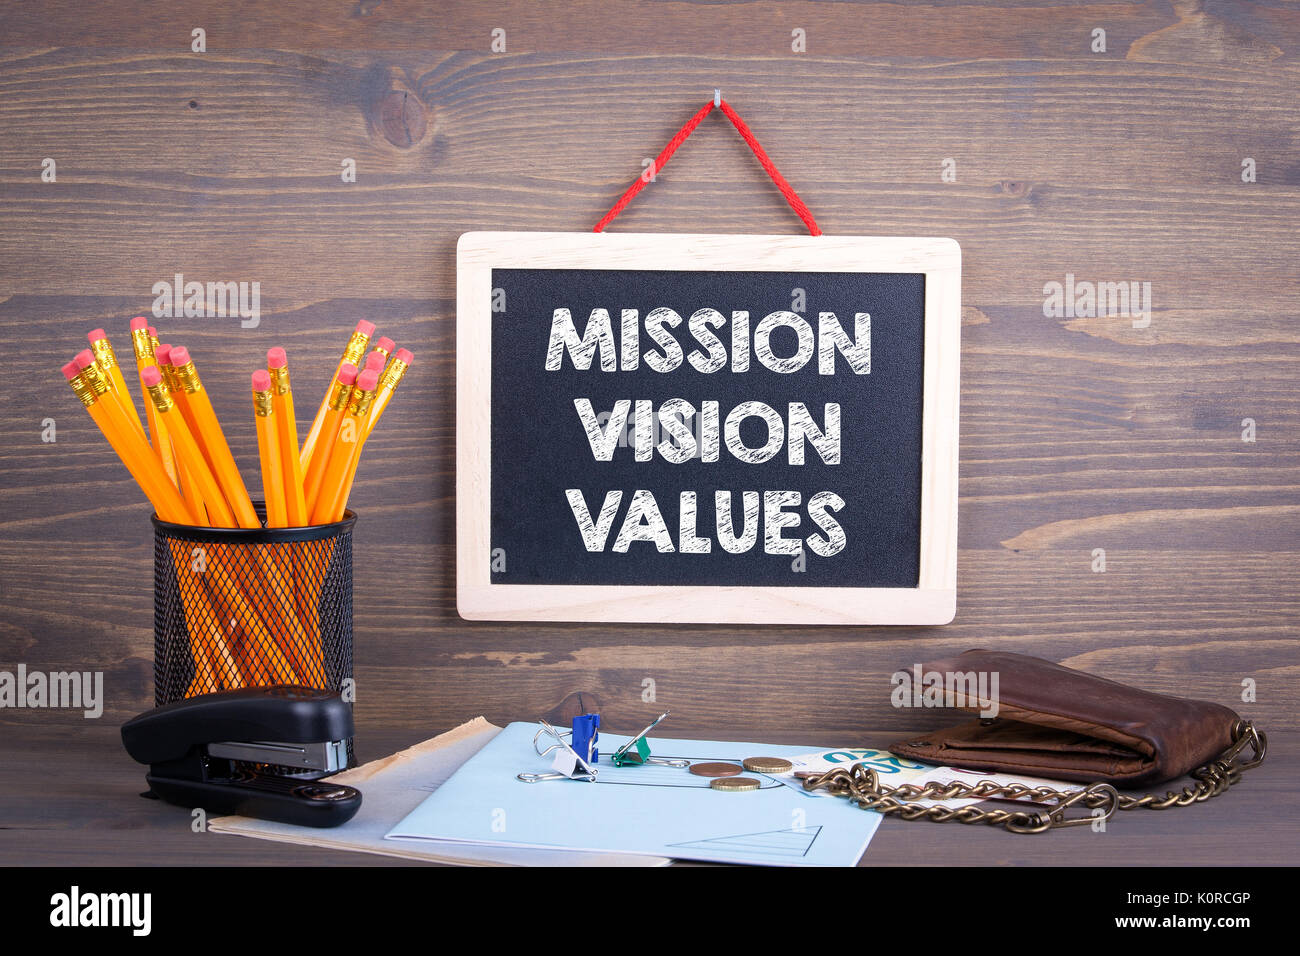 Mission, Vision and Values. Chalkboard on a wooden background. - Stock Image